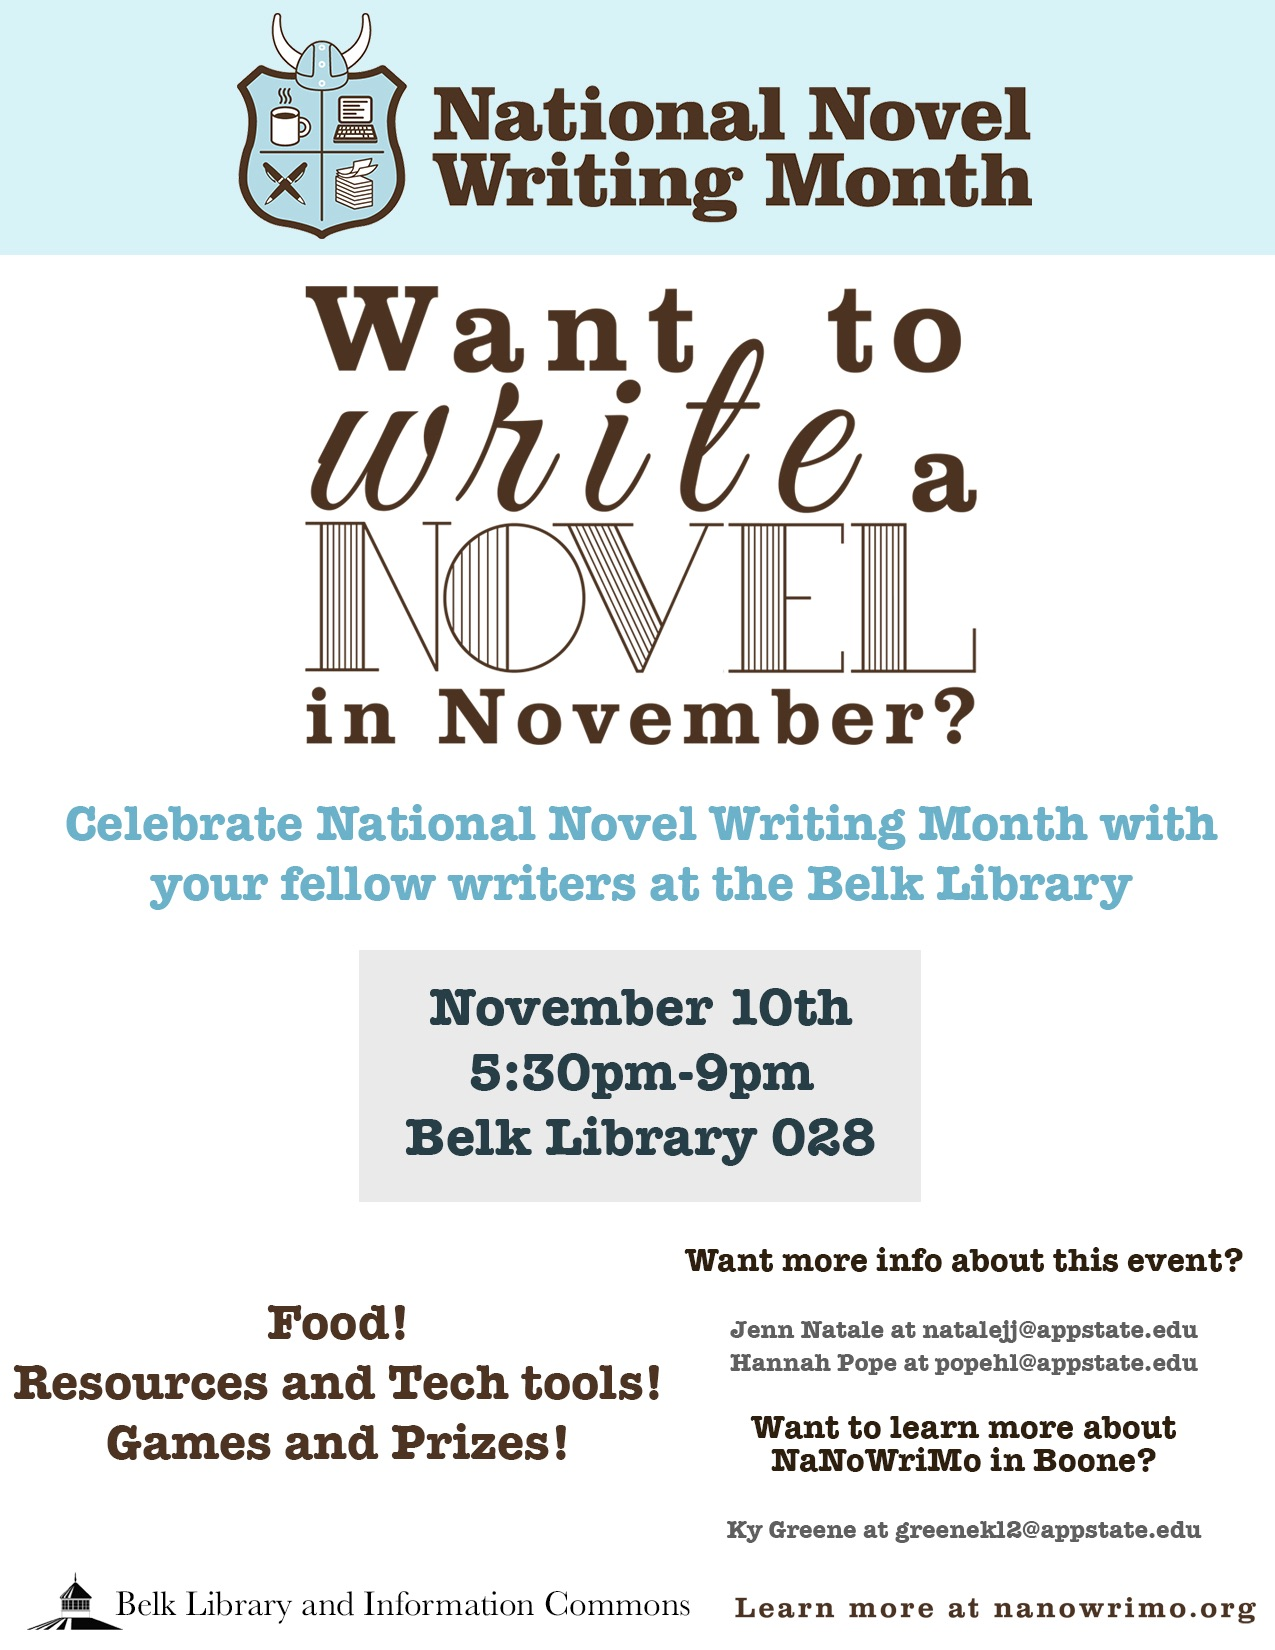 Event in Belk Library 028. November 10, 2016 from 5:30-9pm.